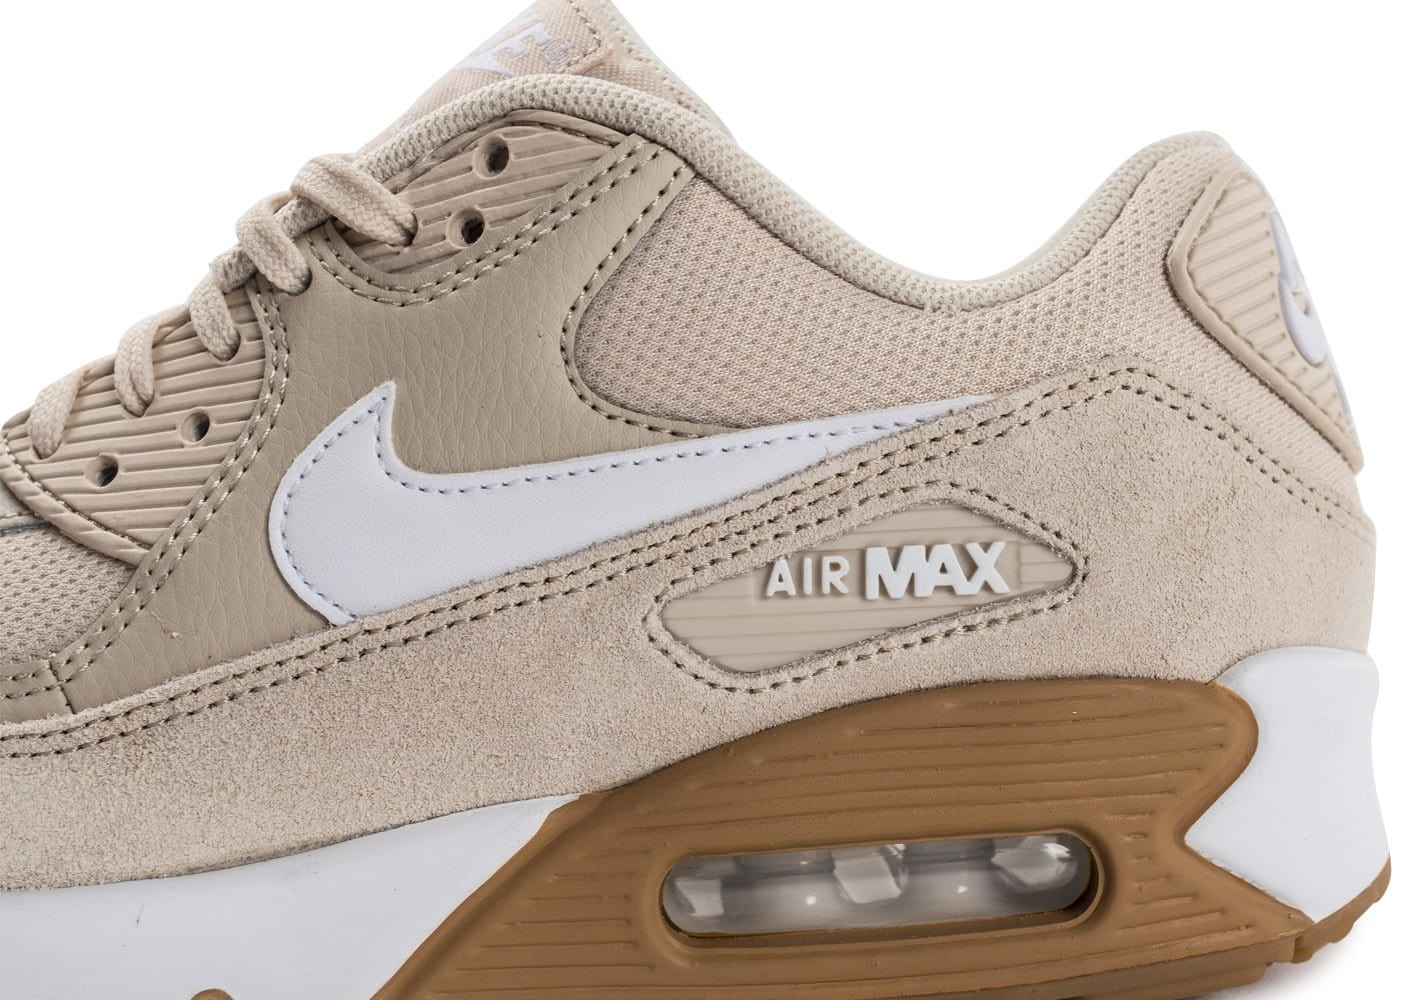 brand new 859ad e0d0c ... Chaussures Nike Air Max 90 W beige vue dessus